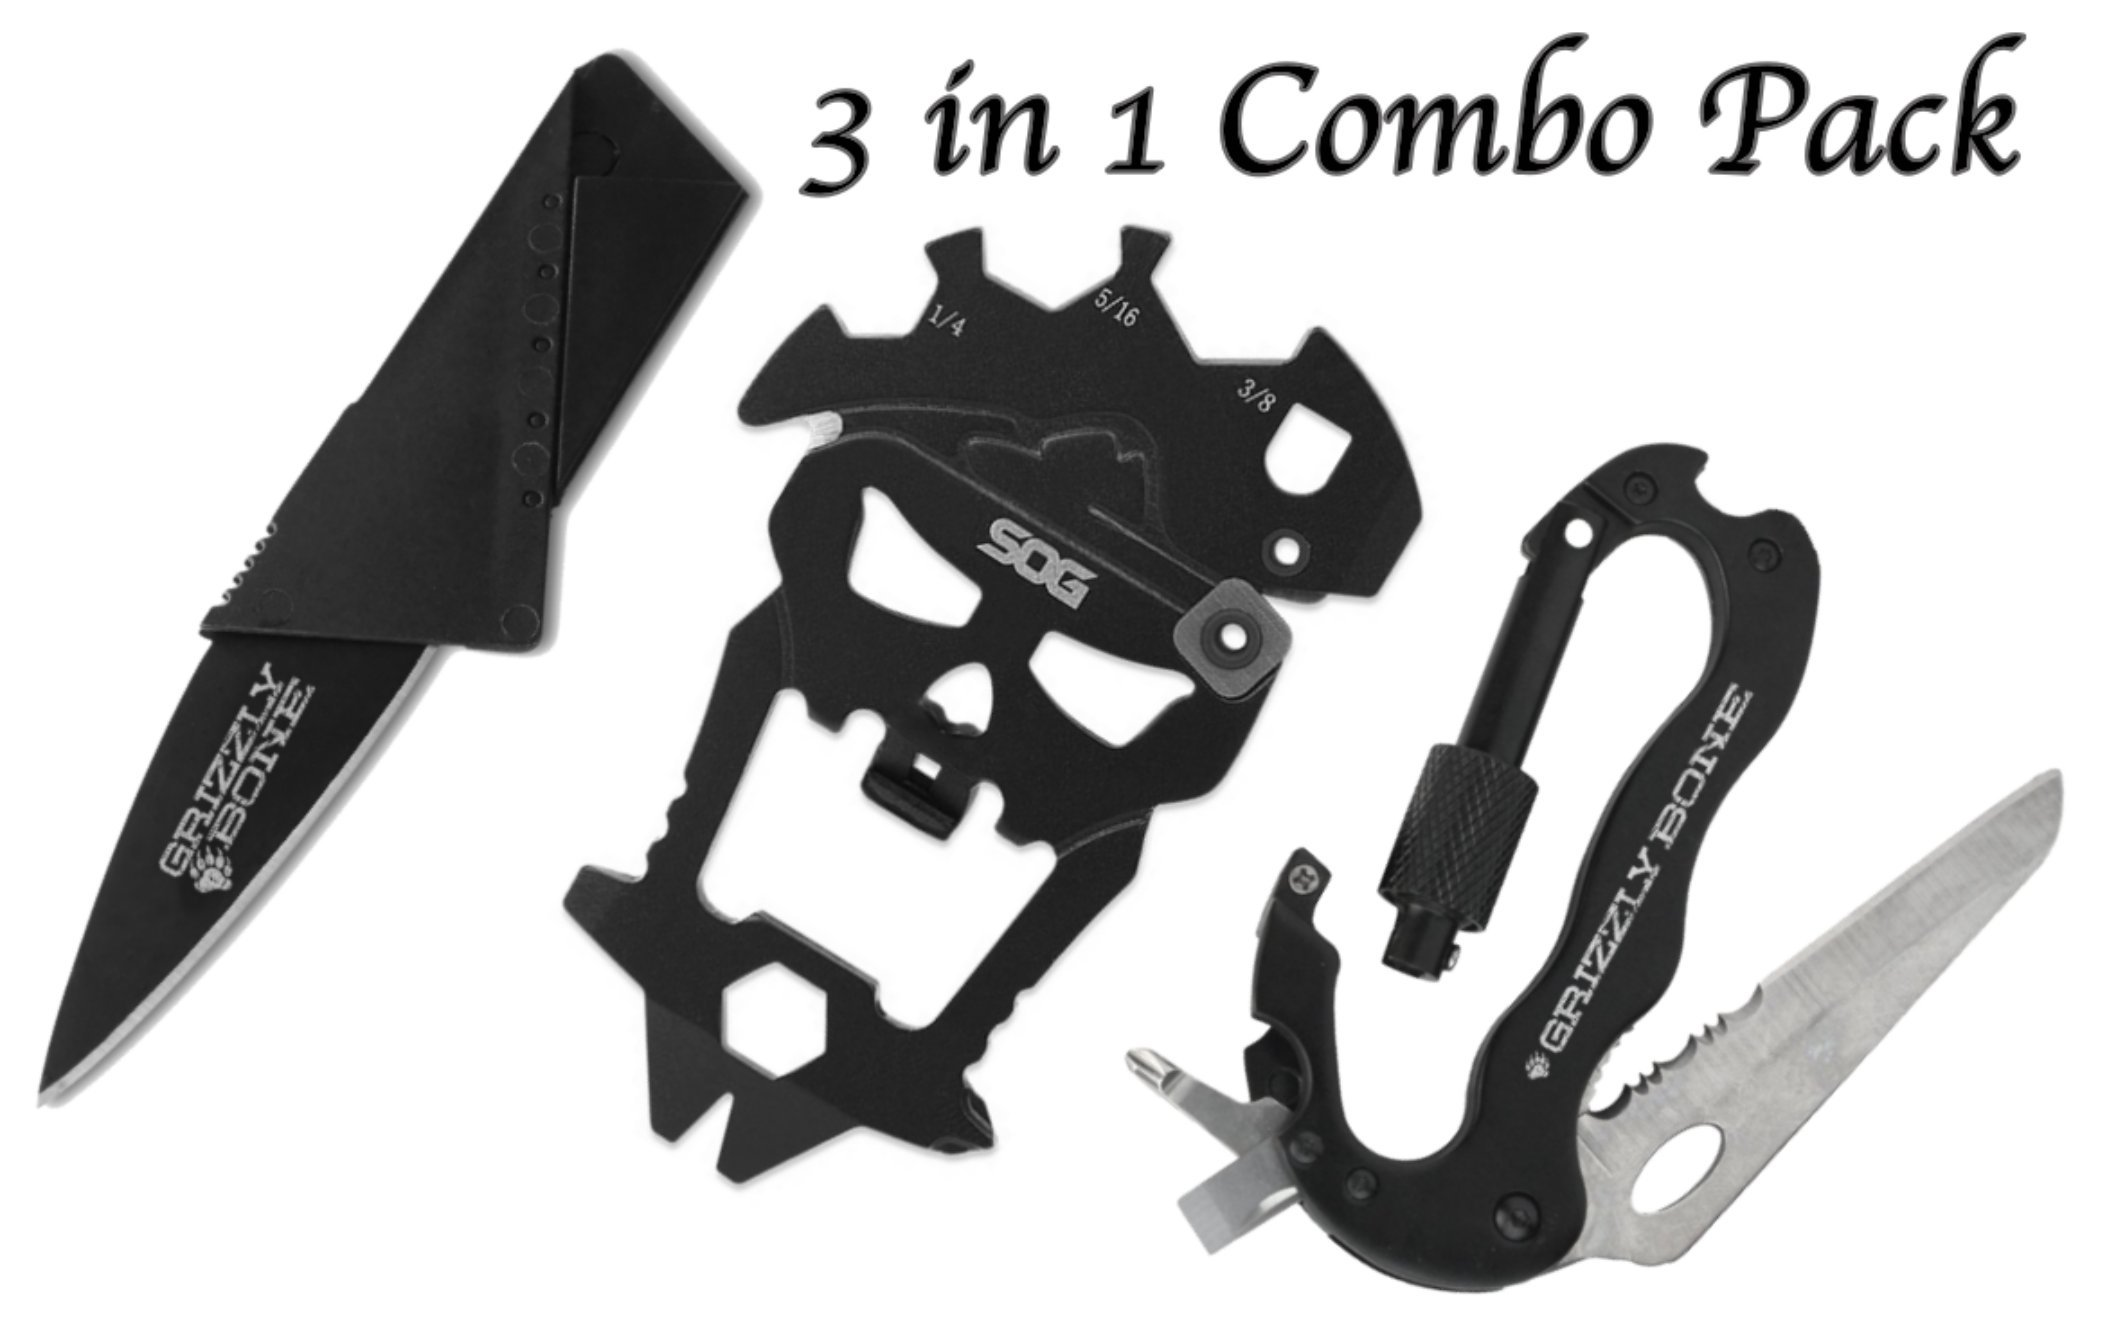 Combo Pack MacV Multi Tool Hardcased Black Blister Self Defense Weapon & Ultimate Survival Tool for Zombie Apocalypse Survival Kit w/ Free 5-in-1 Carabiner Multitool & Credit Card Knife Survival Life